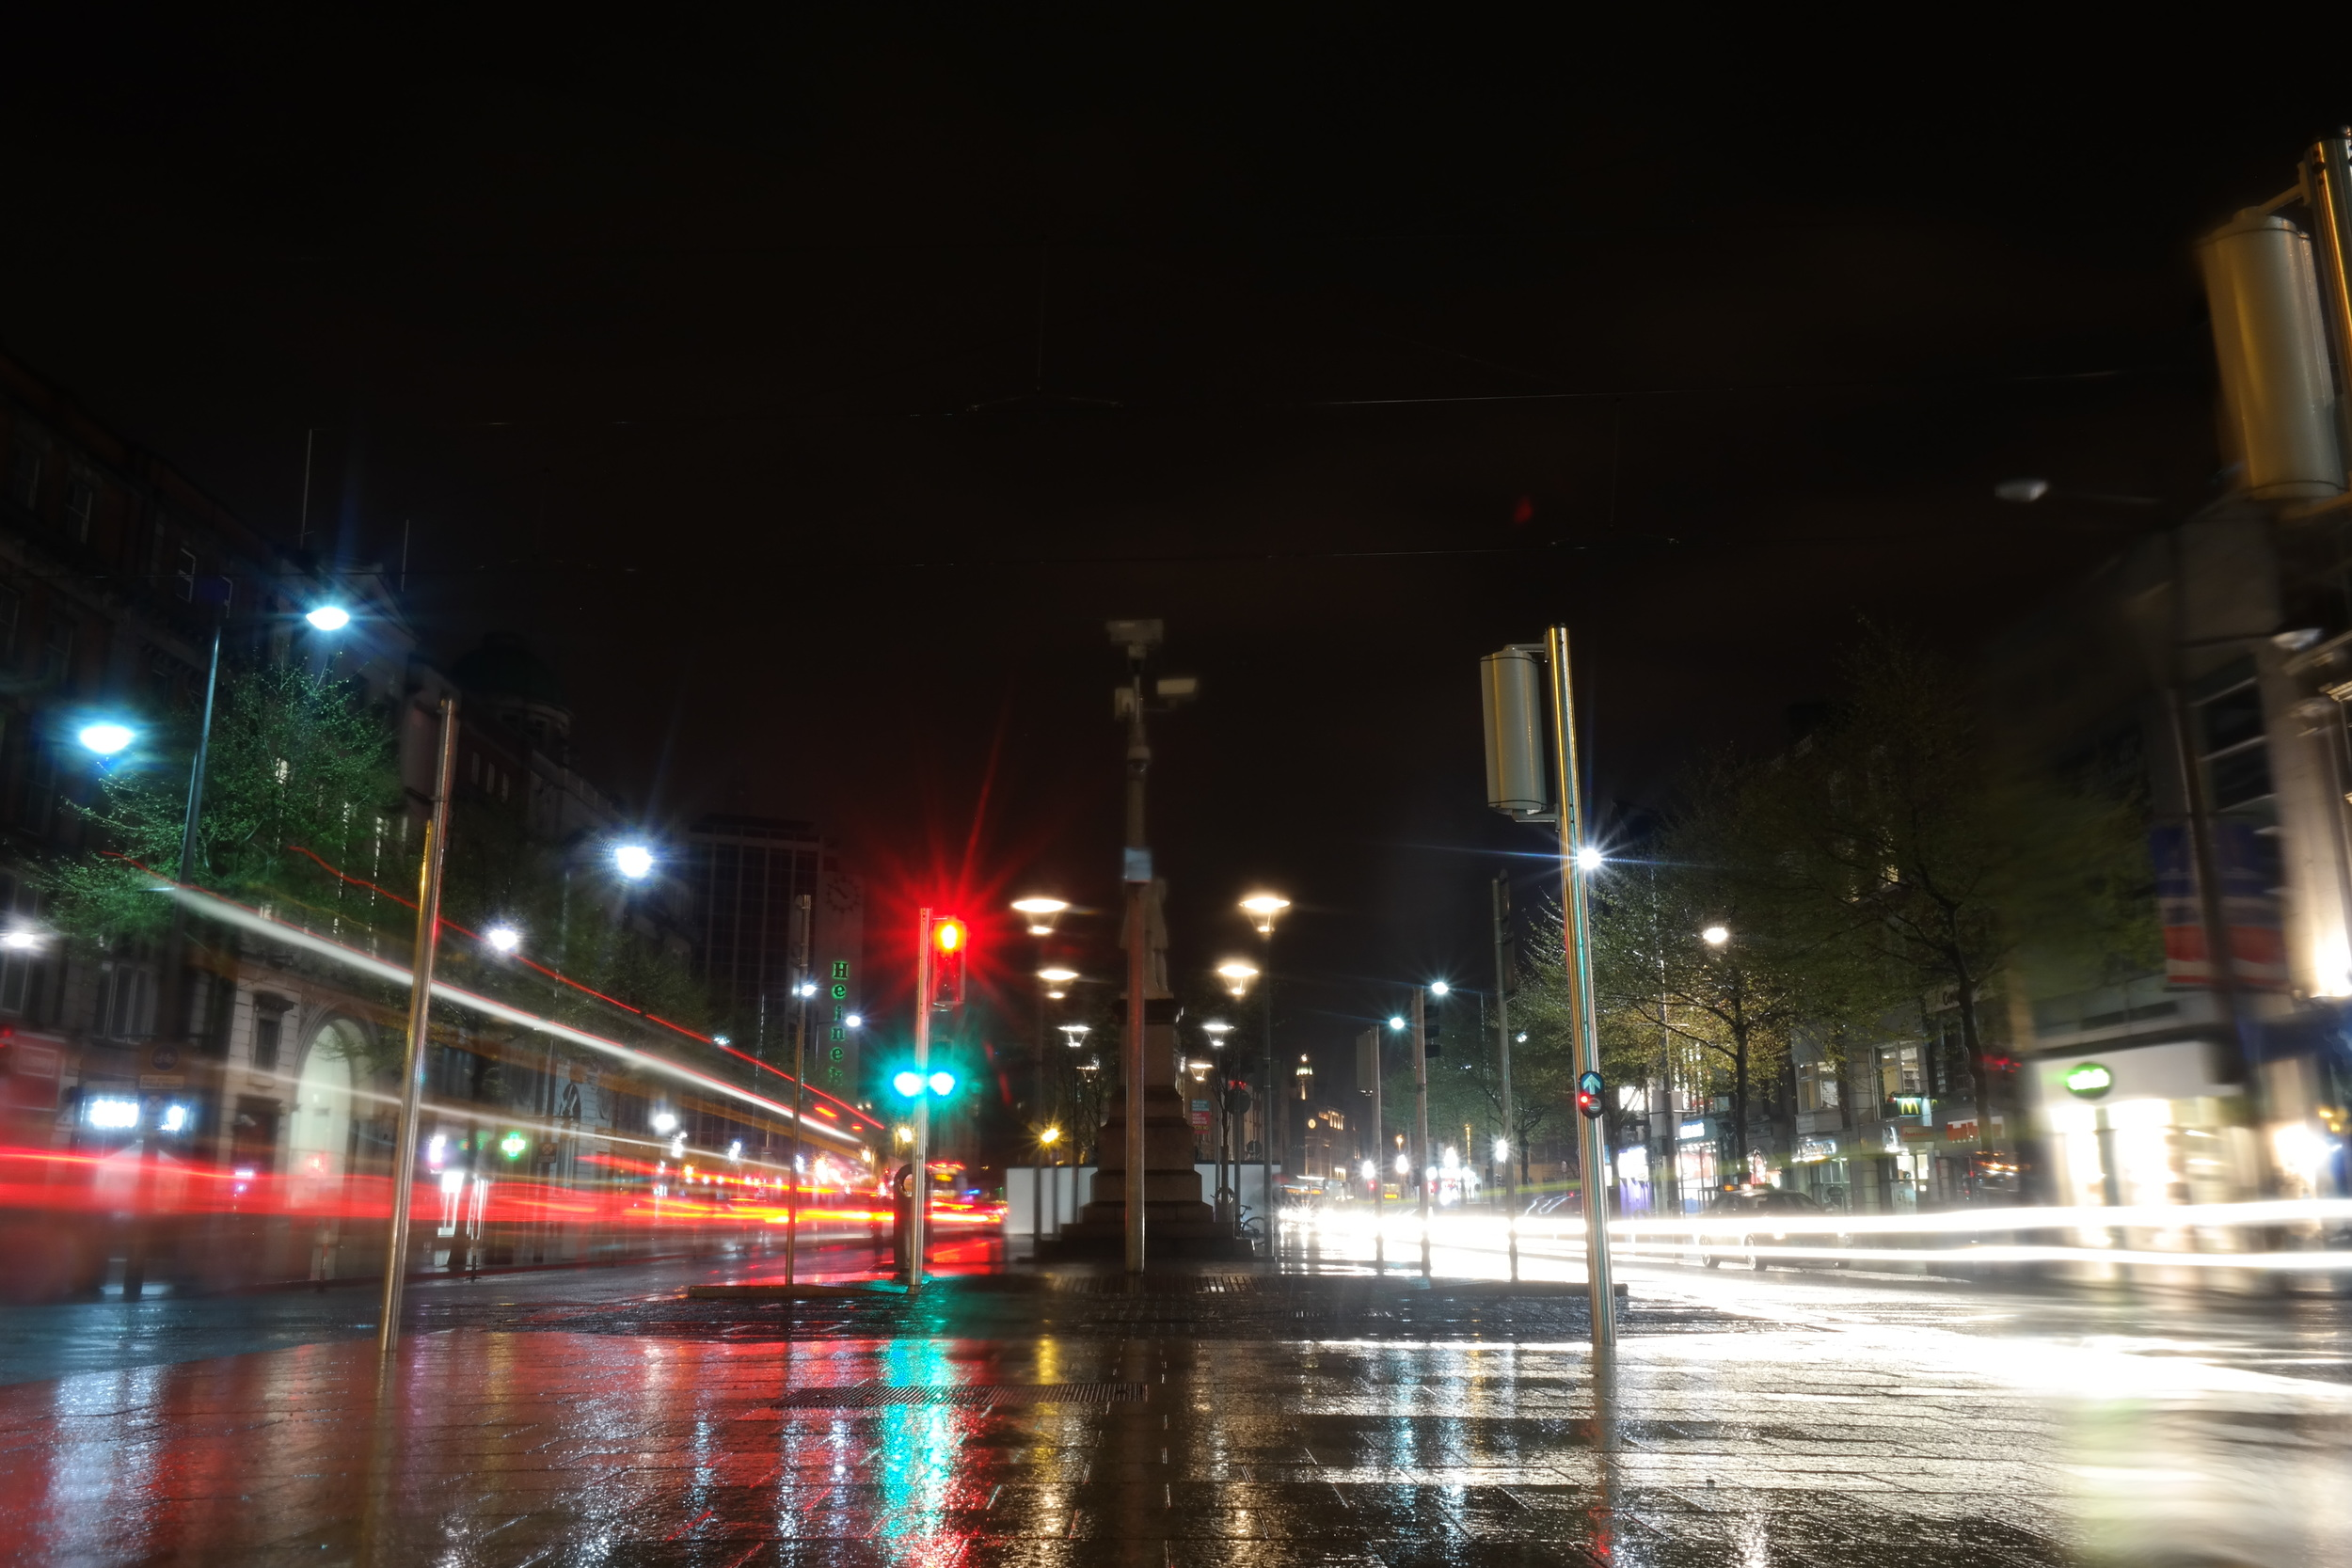 O'Connell Street in the rain